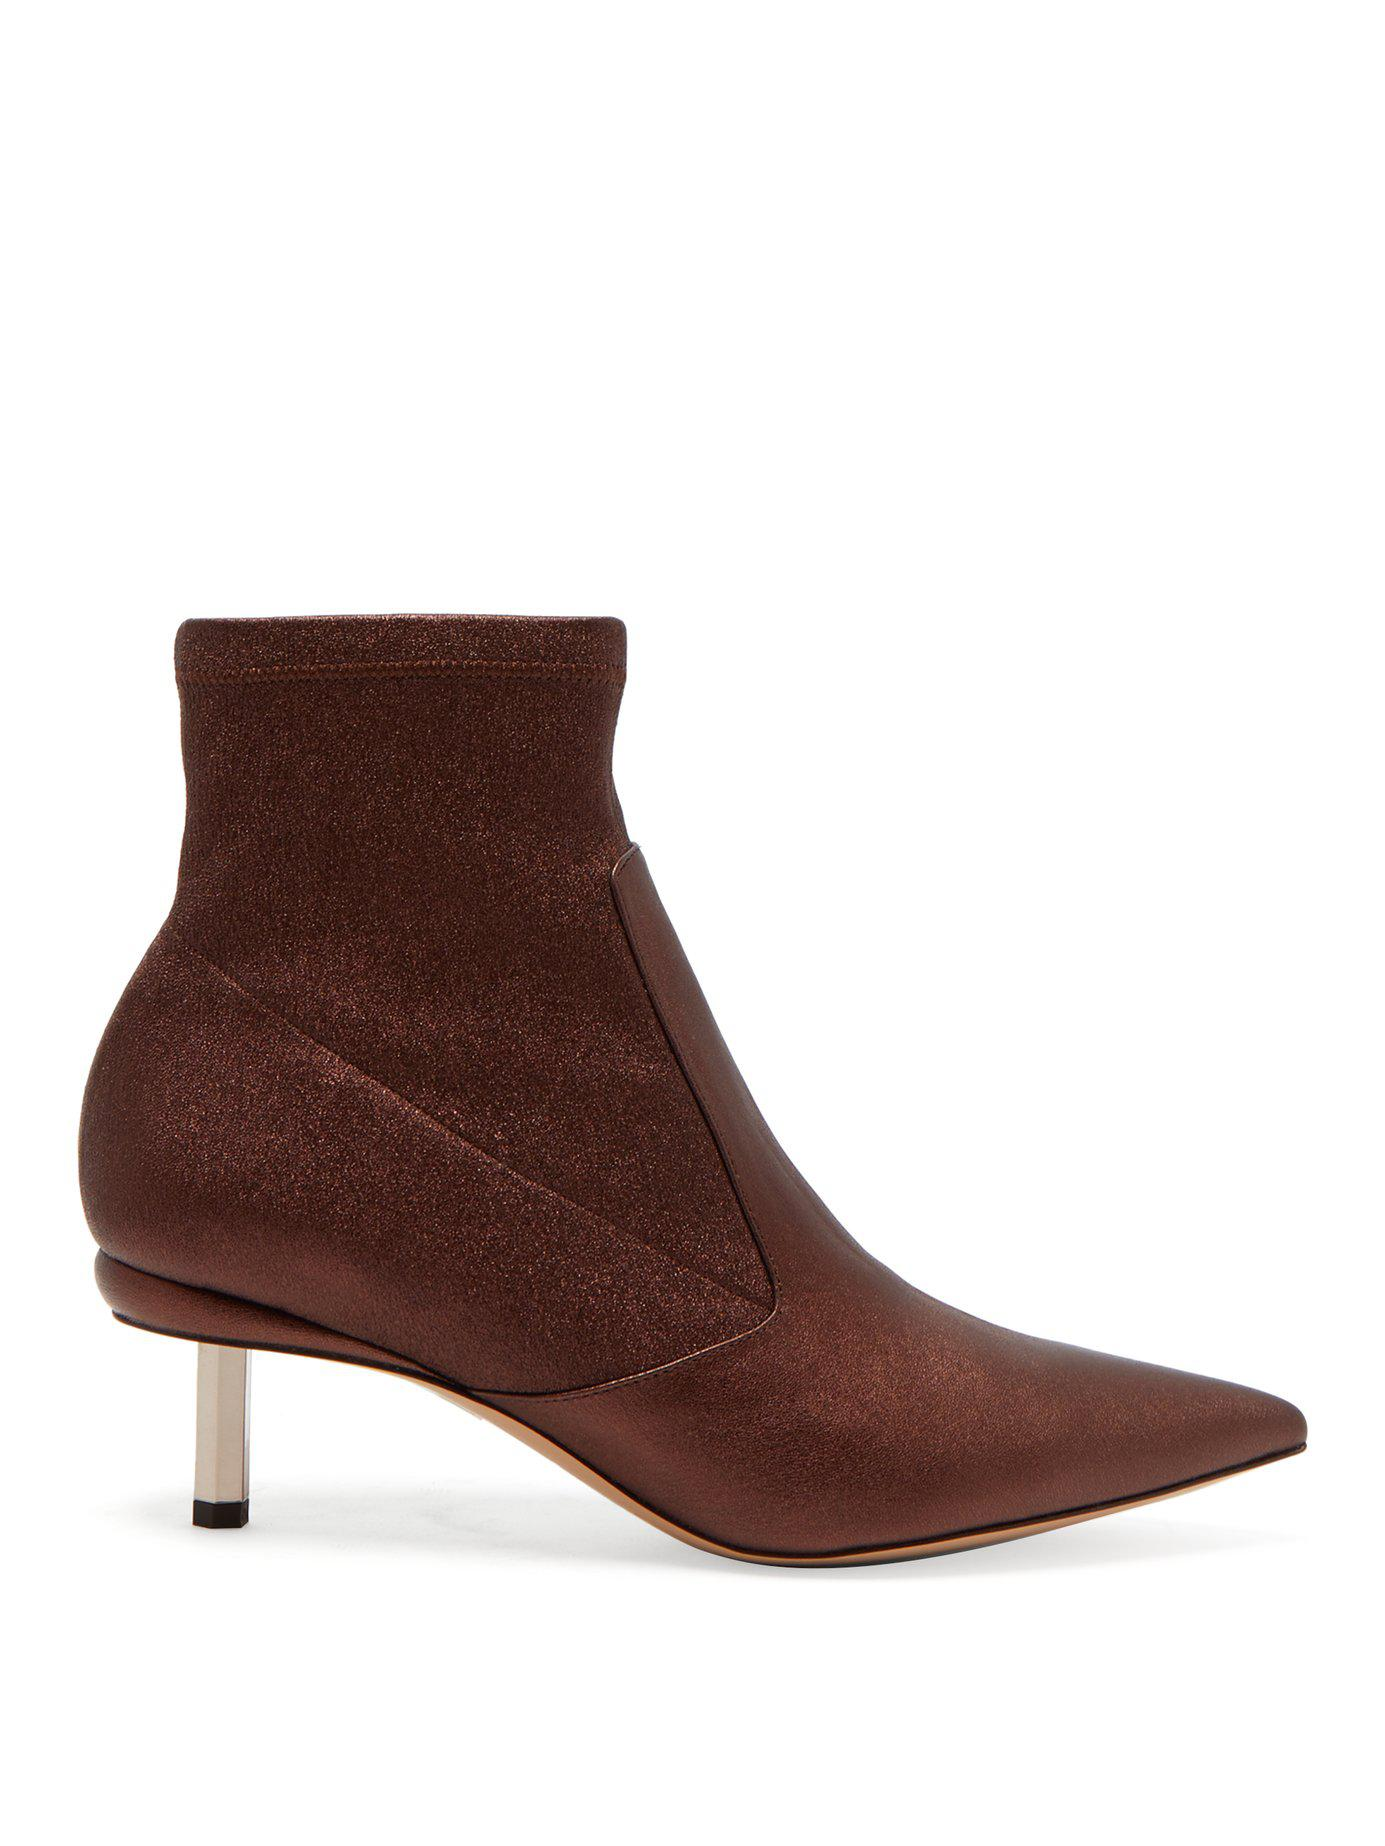 Lyst - Nicholas Kirkwood Polly Metallic Leather Ankle Boots in Brown 692138e750a65